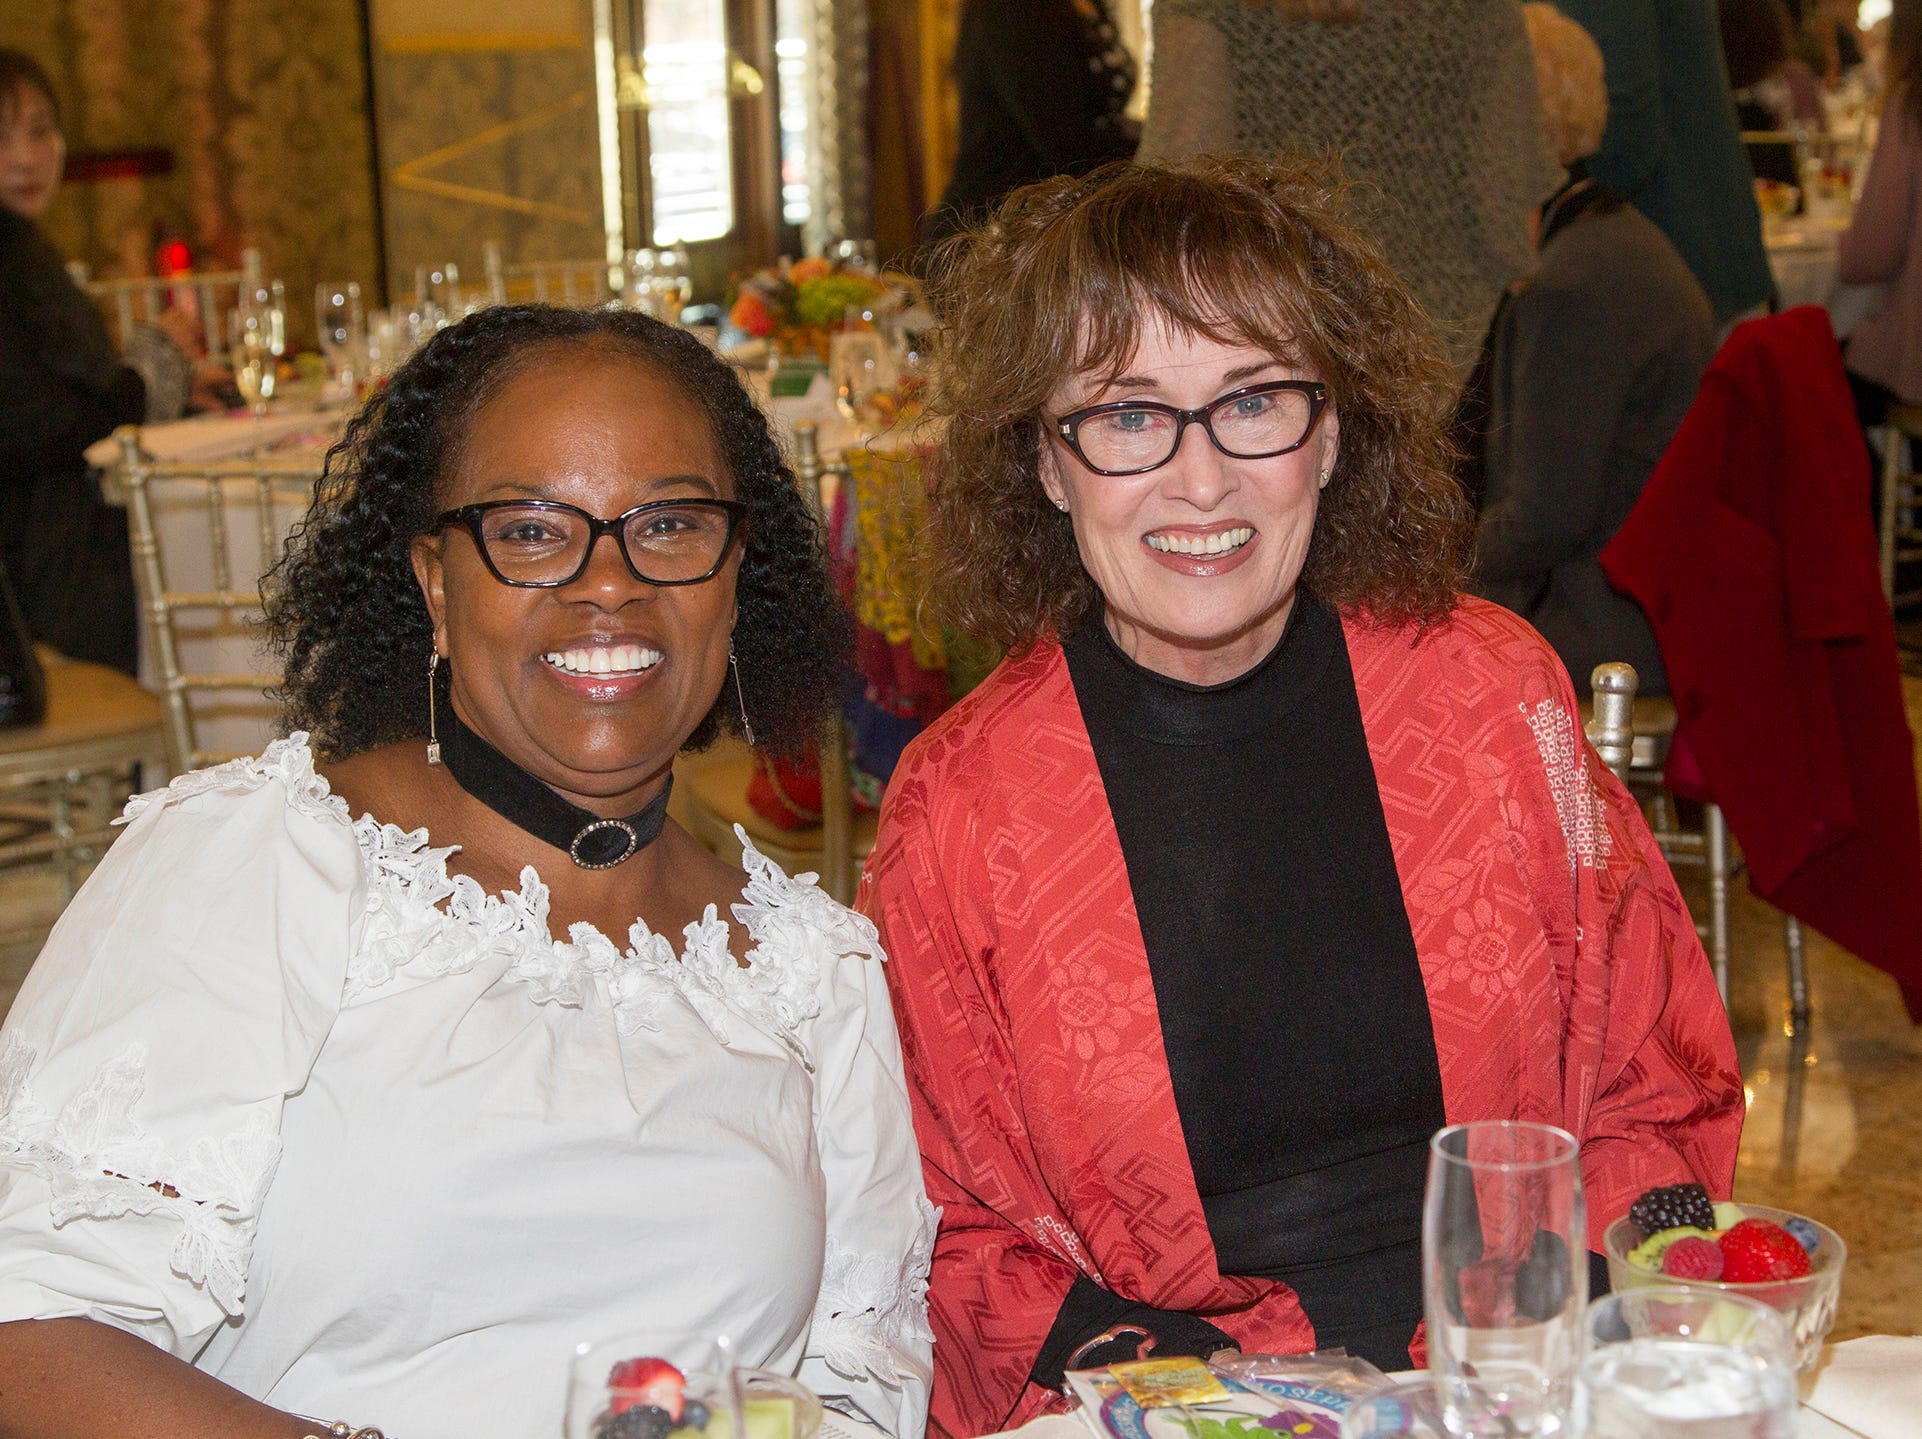 Pam Donovan, Cislyn Beckford. Josephine's Garden, part of Hackensack Meridian Health, held its luncheon gala at Season's in Washington Township. The mission of this organization is to provide a place of respite, joy and hope to children battling cancer. 11/14/2018